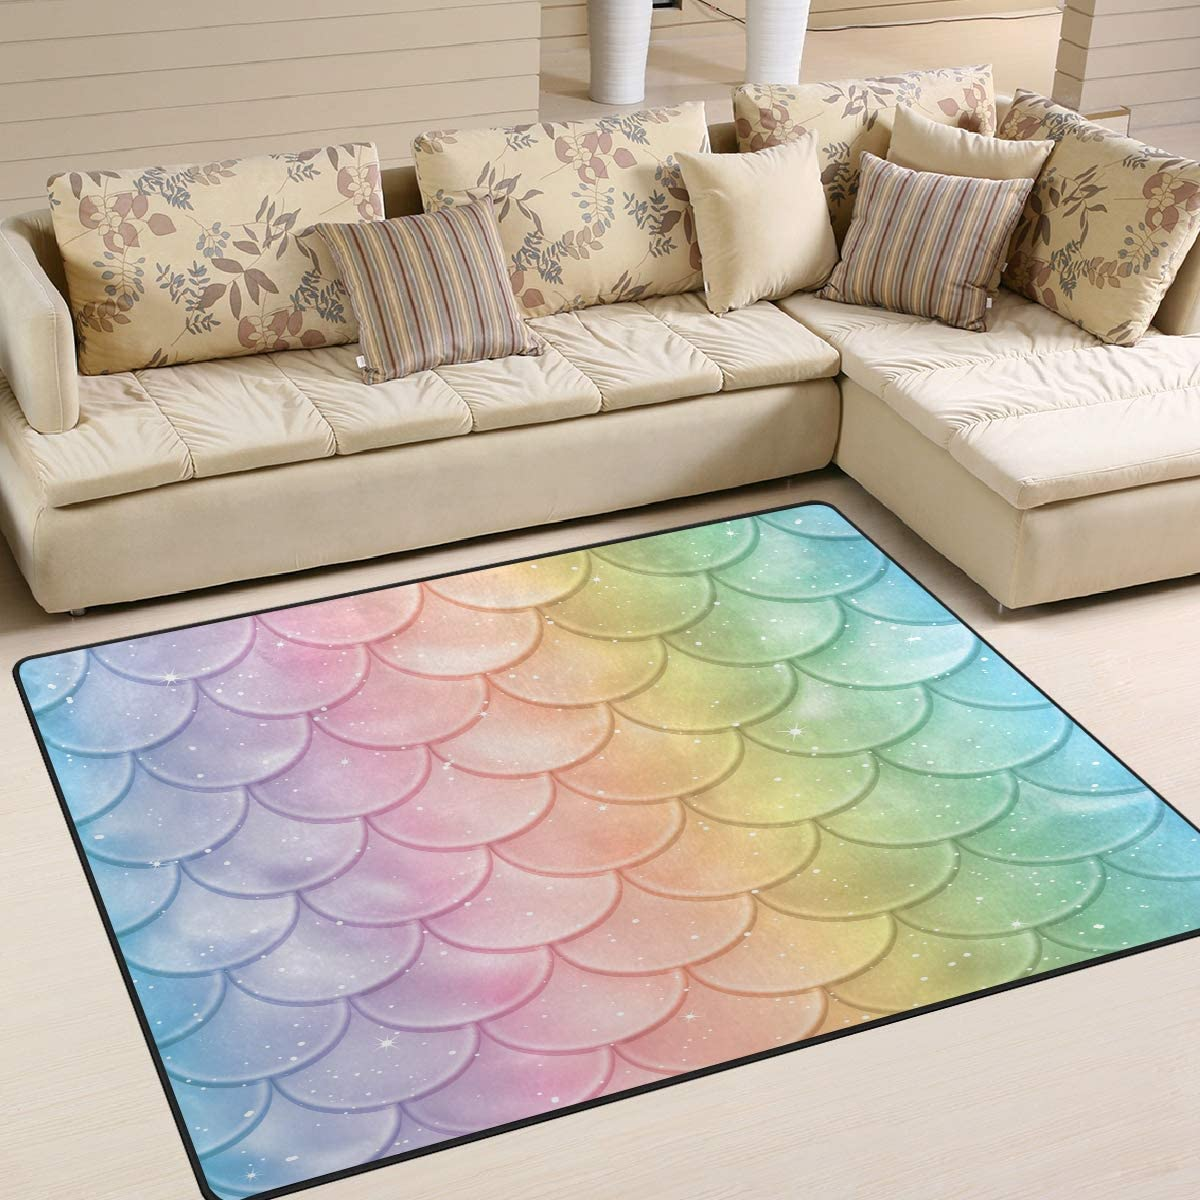 ALAZA Beautiful Mermaid Scales Tail Area Rug Rugs for Living Room Bedroom 7 x 5